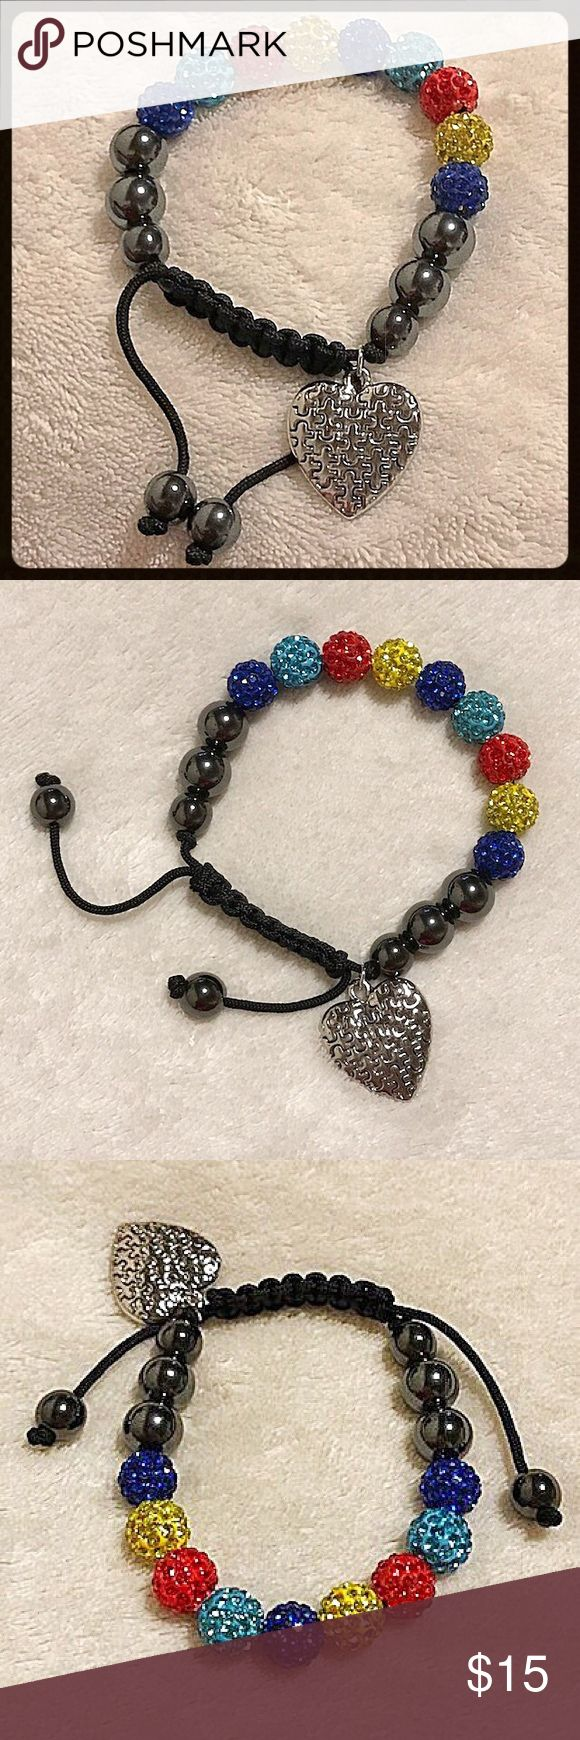 Autism Awareness Bracelet Adjustable Autism Awareness bracelet with dangle puzzle piece heart pendant, 9 colorful 10mm crystal beads, 4 10mm magnetic Hematite balls and 4 8mm magnetic Hematite balls. The drawstring allows plenty of room for any size wrist. Jewelry Bracelets